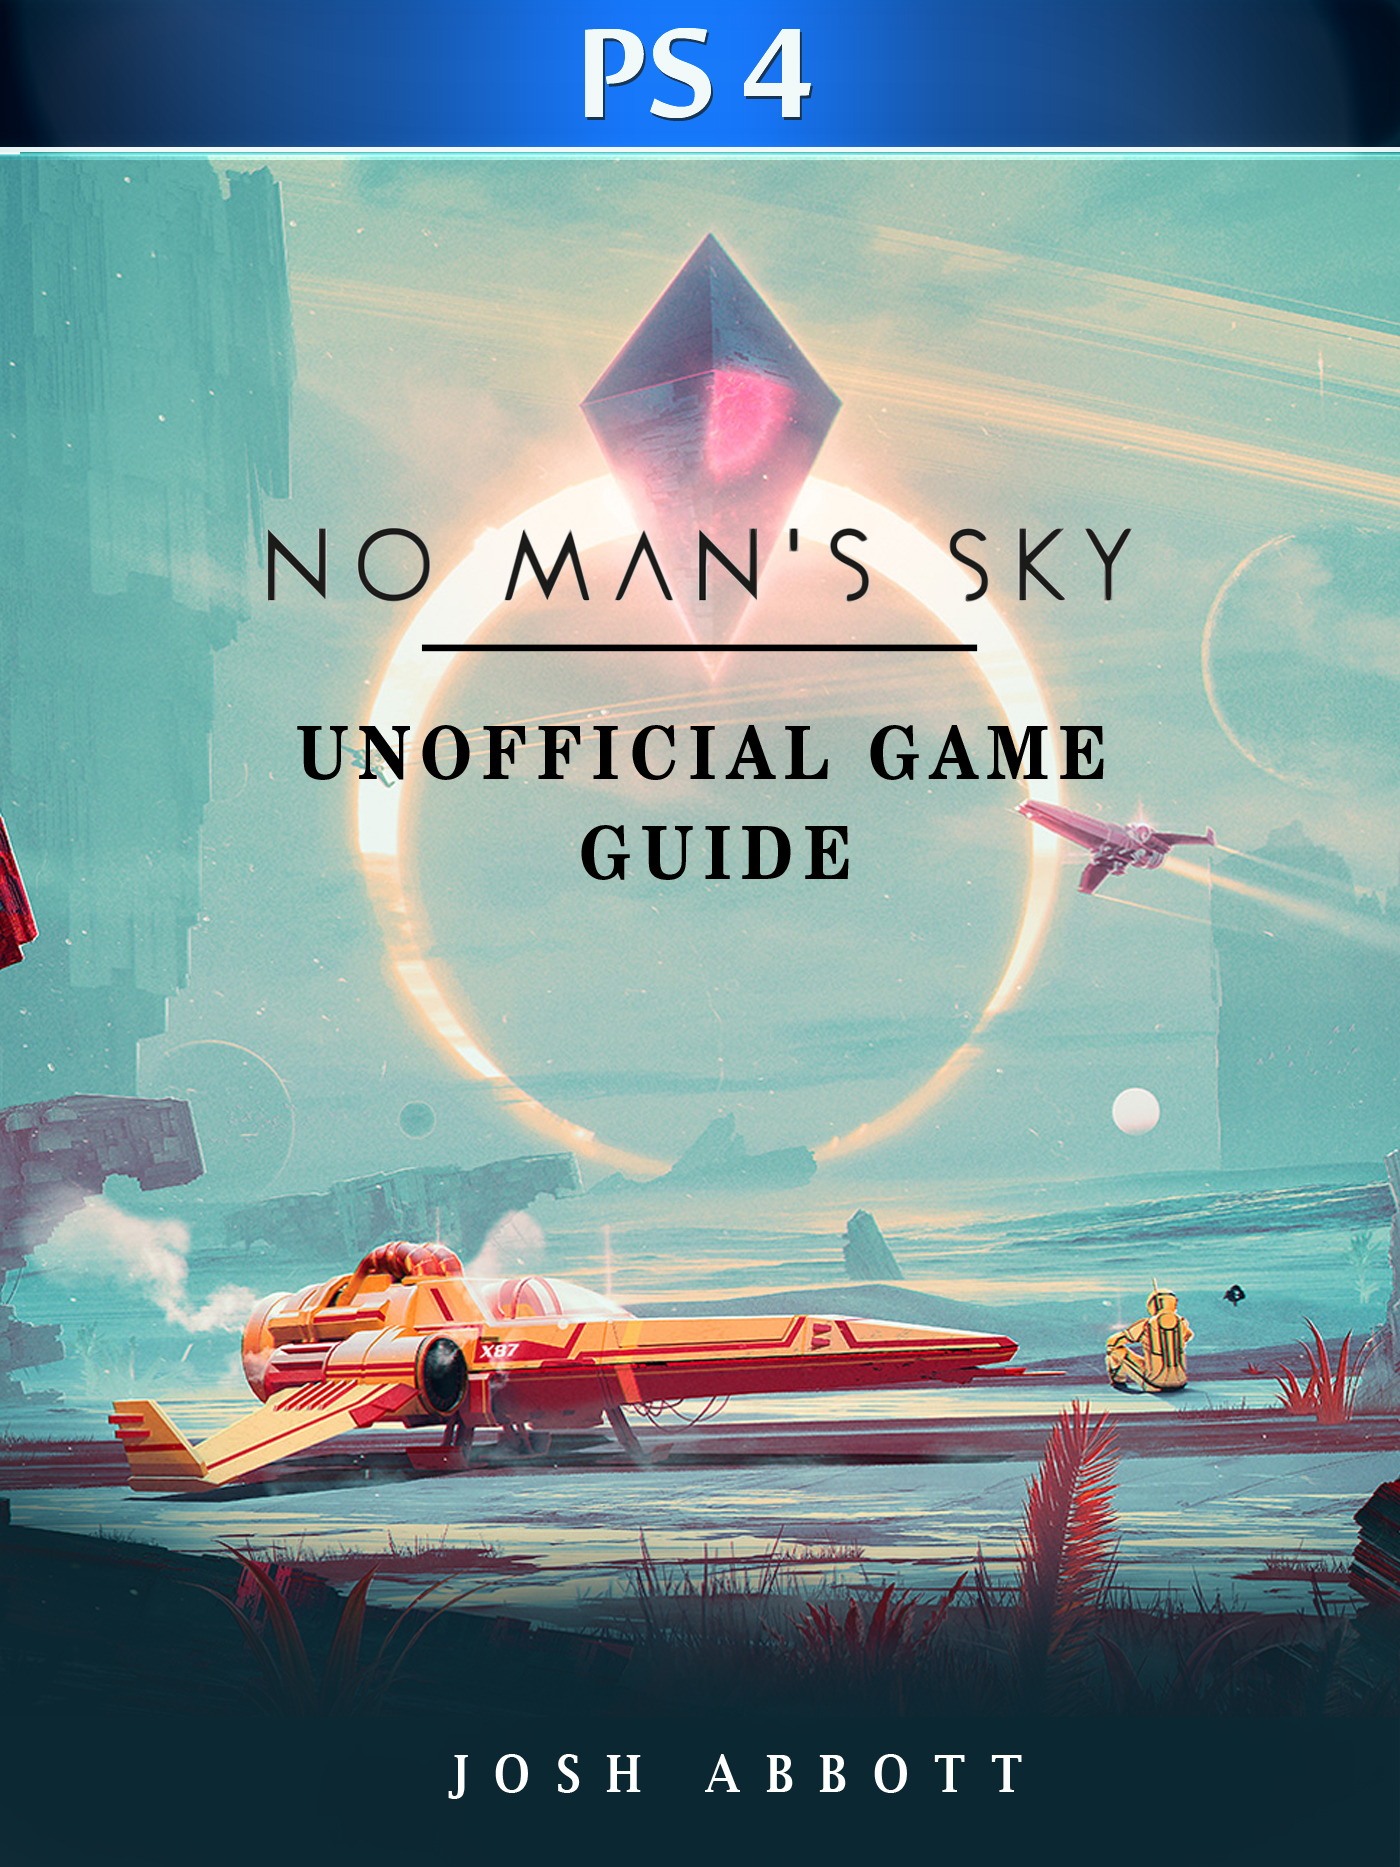 No Mans Sky PS4 Unofficial Game Guide